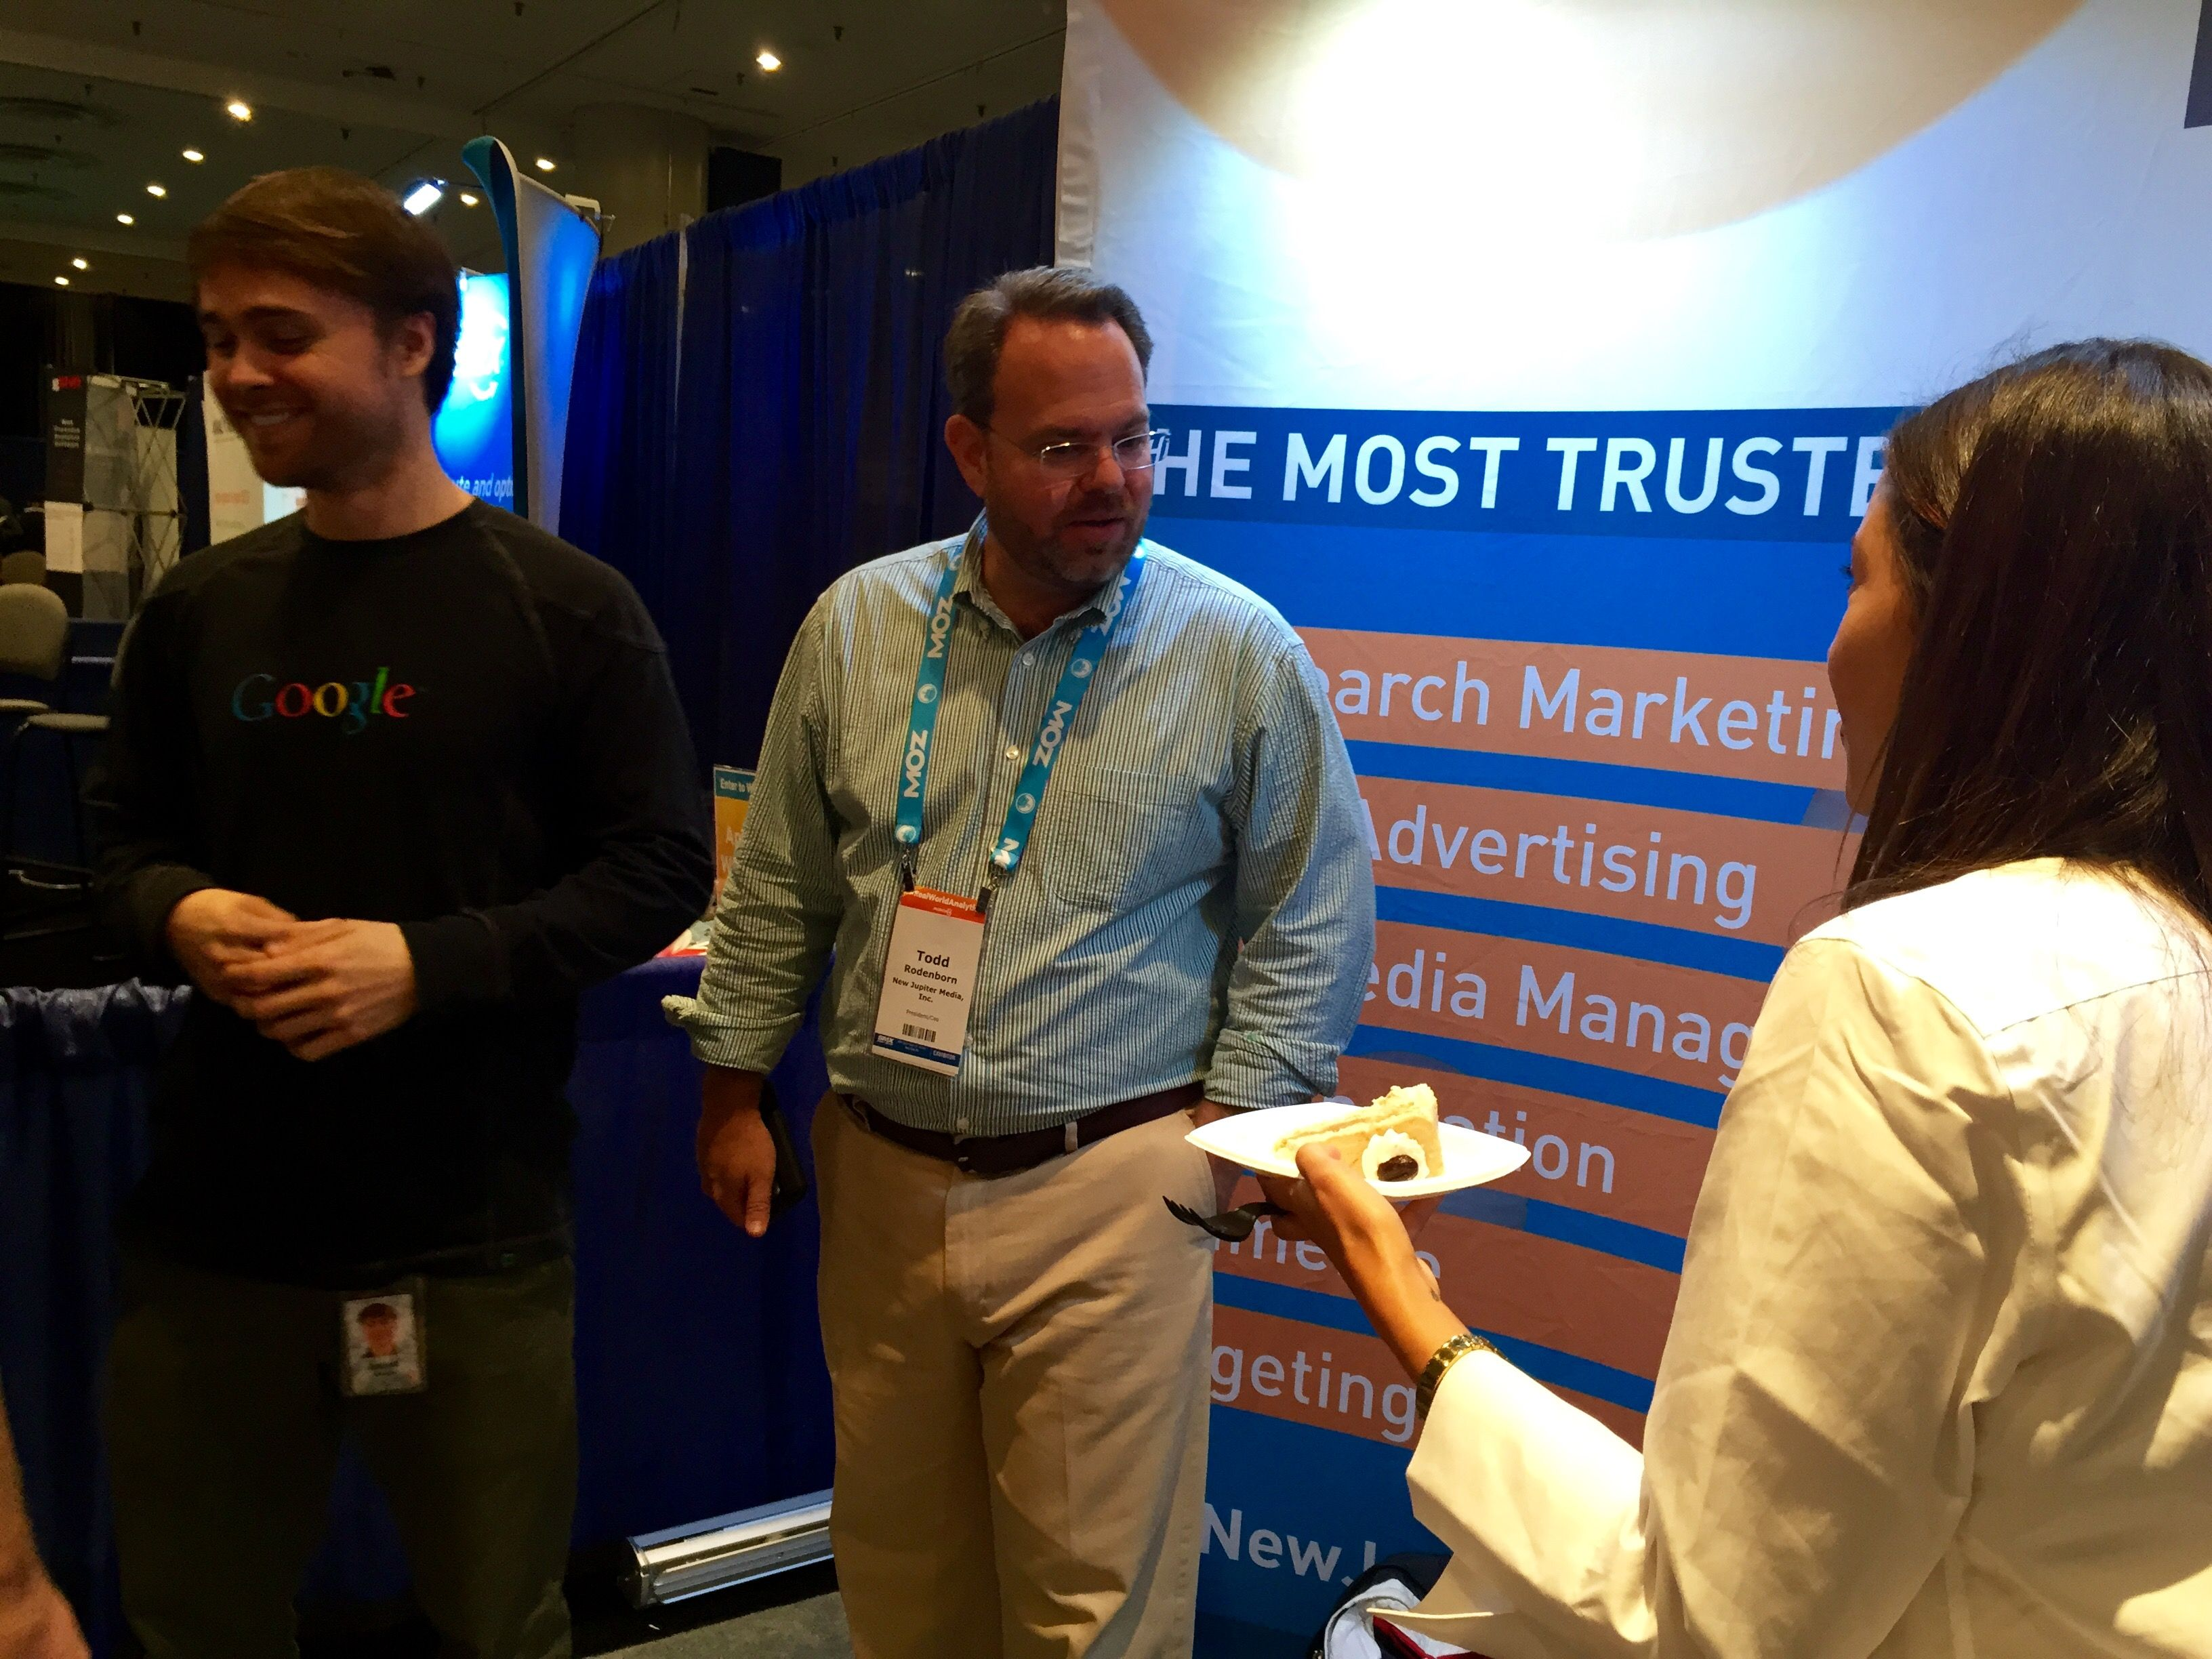 Our Google rep Jacob, our Founder & CEO Todd, and our Director of Digital Marketing Molly. Click the photo to see the rest of our photos from SMX East 2015.